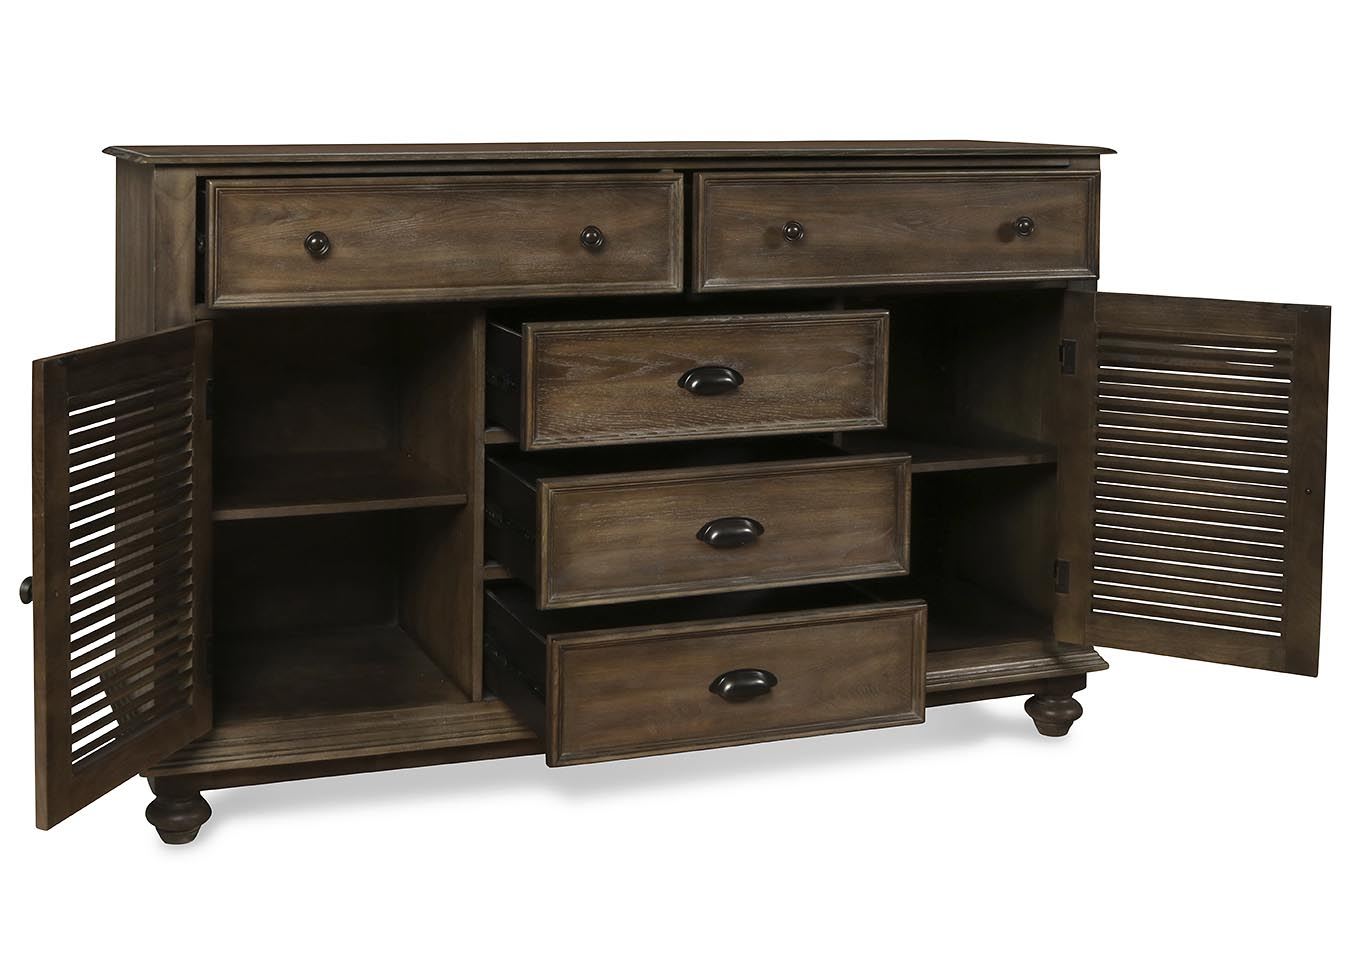 Lakeport Pewter Dresser,New Classic